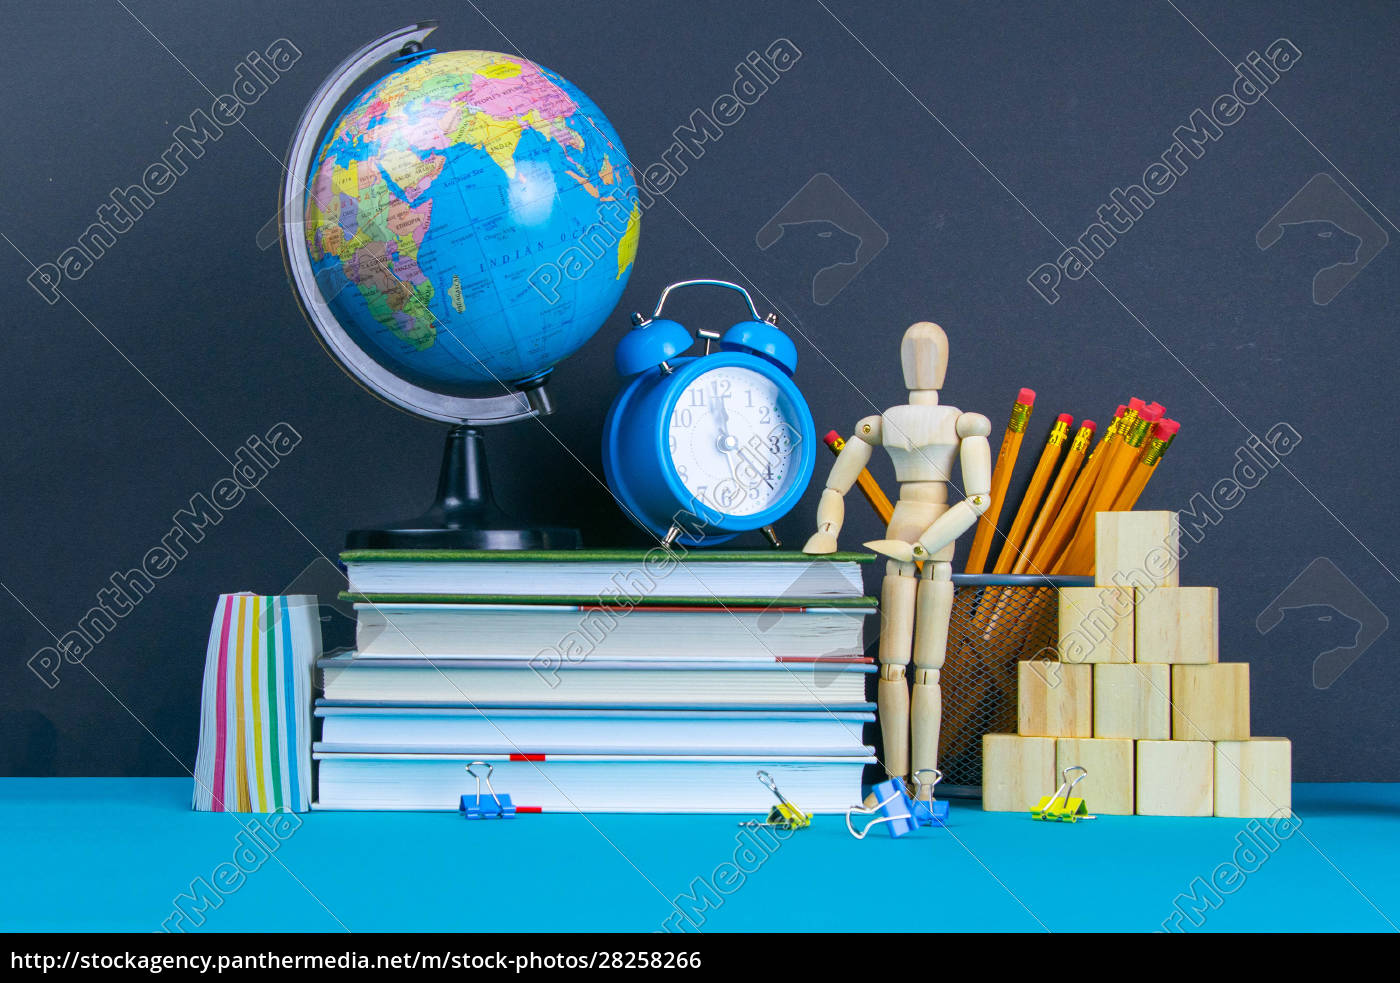 the, globe, and, the, clock, stand - 28258266